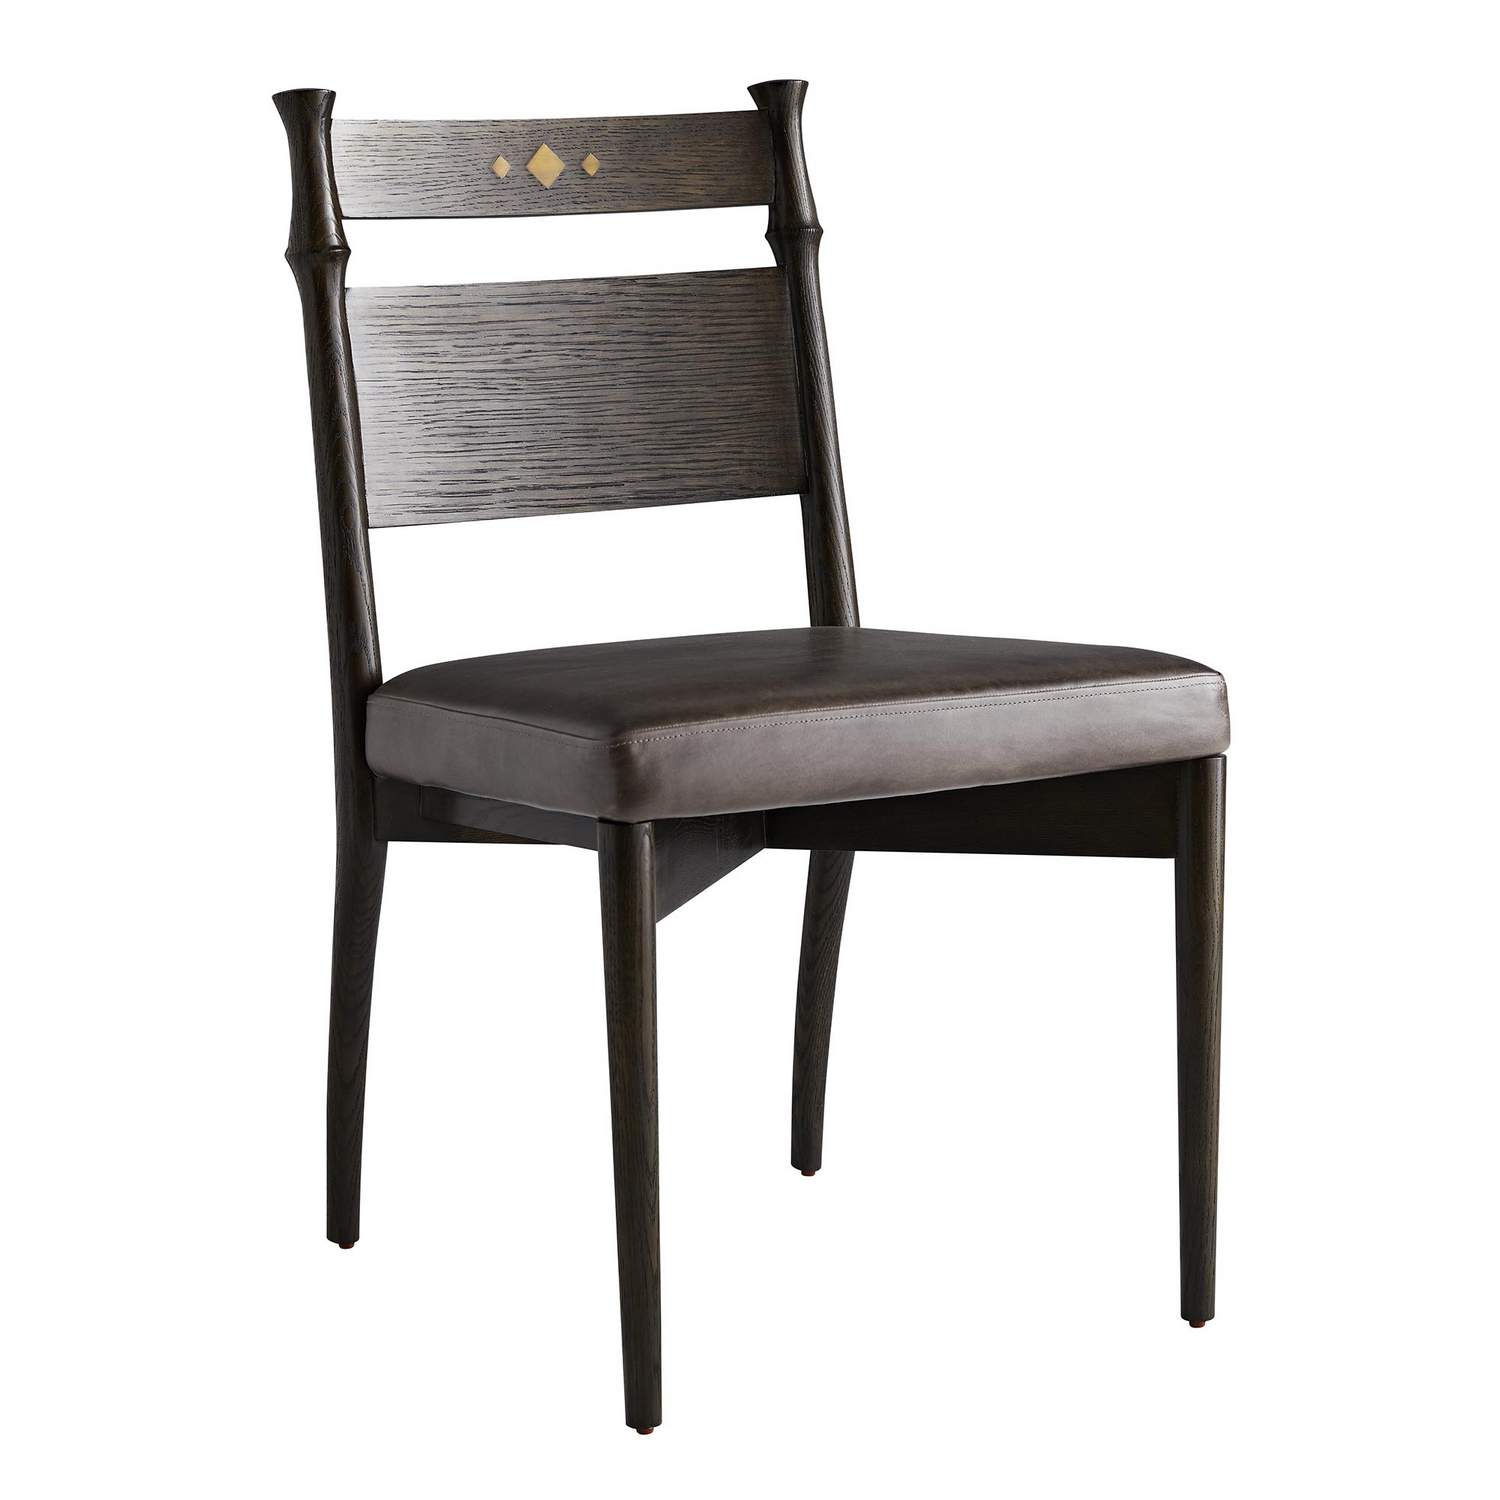 Chair by Arteriors 8093